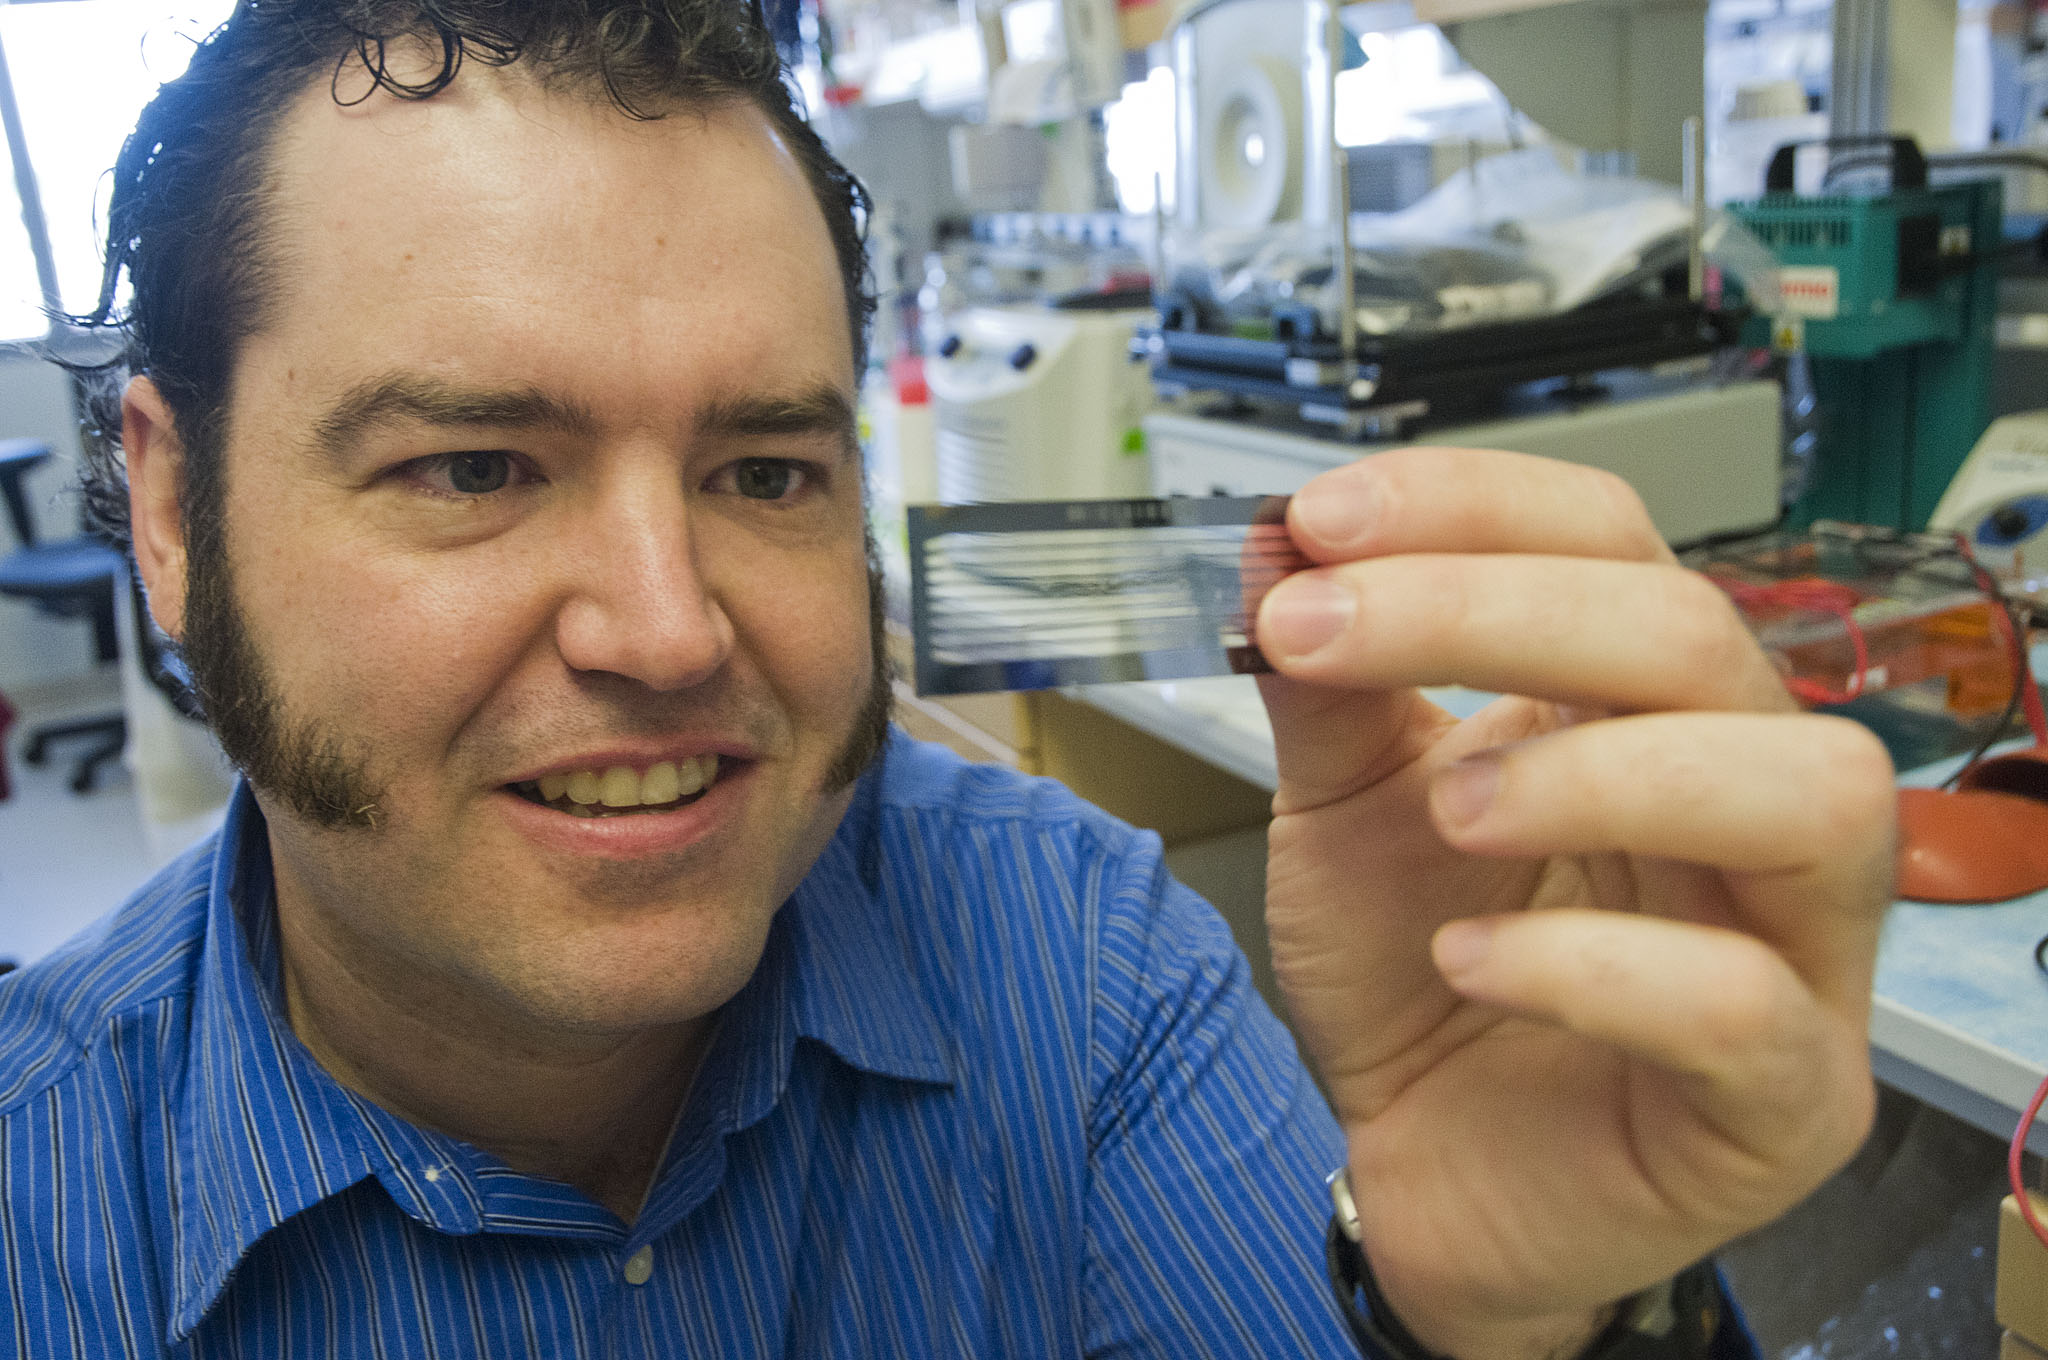 Dr. Brian O'Roak holds a flow cell on which DNA samples are loaded for sequencing. The imaging and chemical analysis of the sample all take place on the slide.